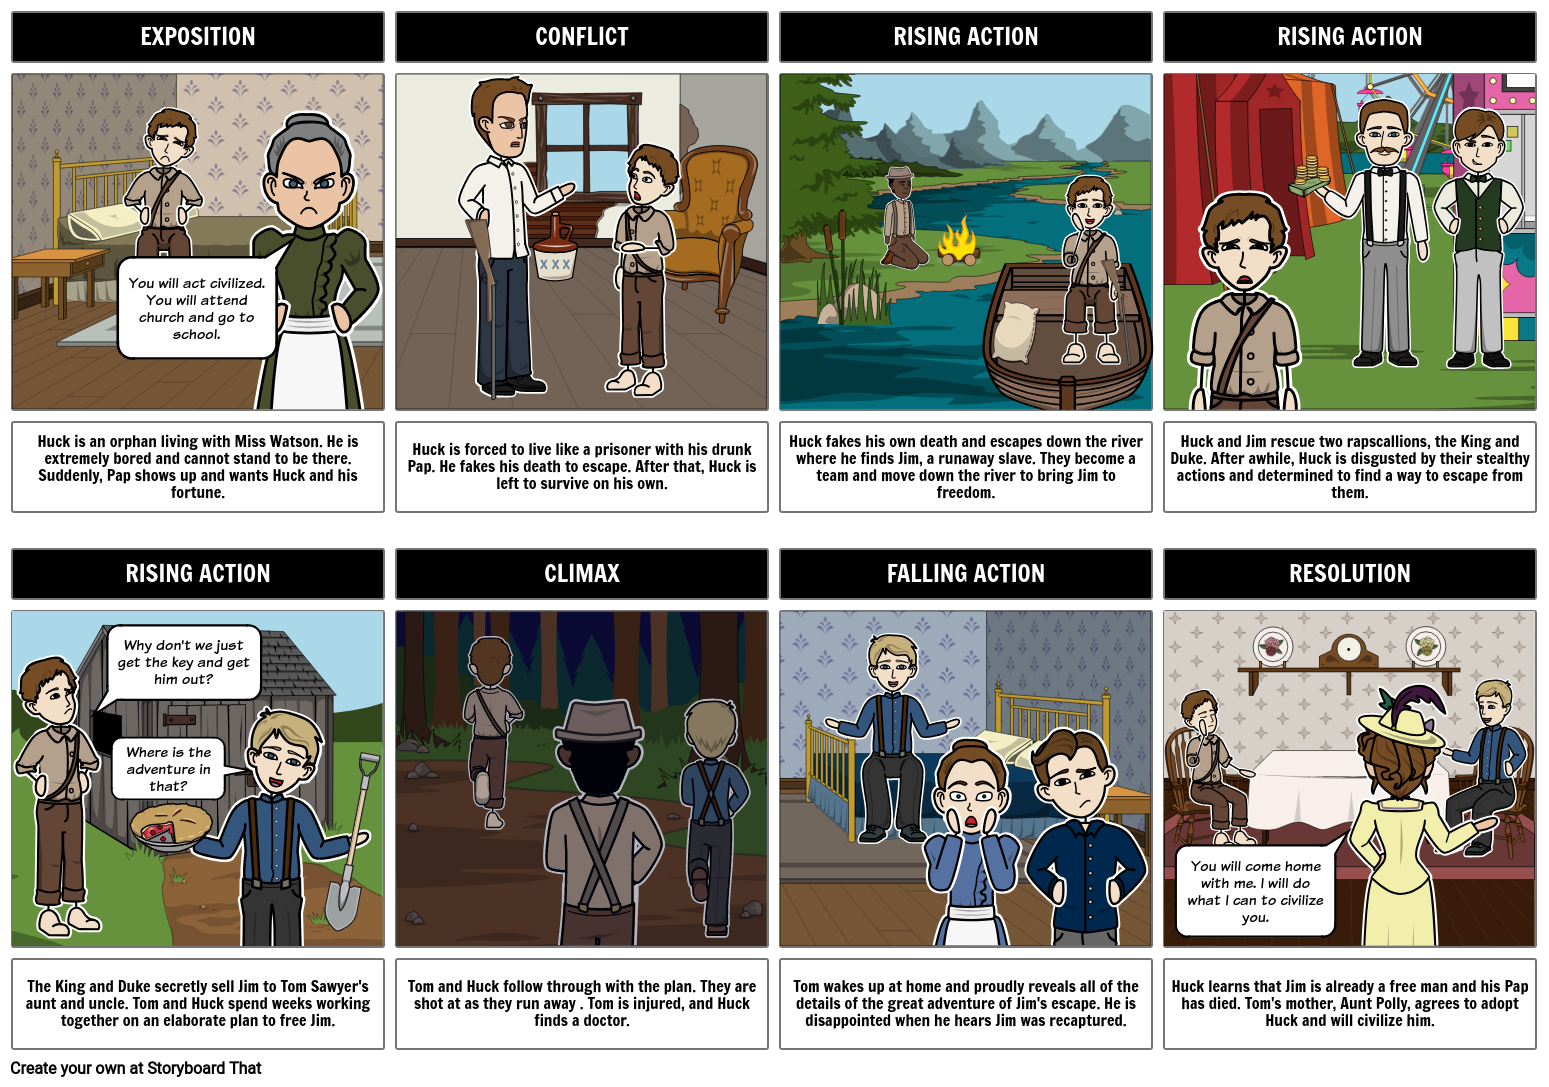 an analysis of conflict in society in the adventures of huckleberry finn by mark twain Excerpt from the adventures of huckleberry finn the adventures of huckleberry finn by mark twain evidence to support analysis of what the text says.